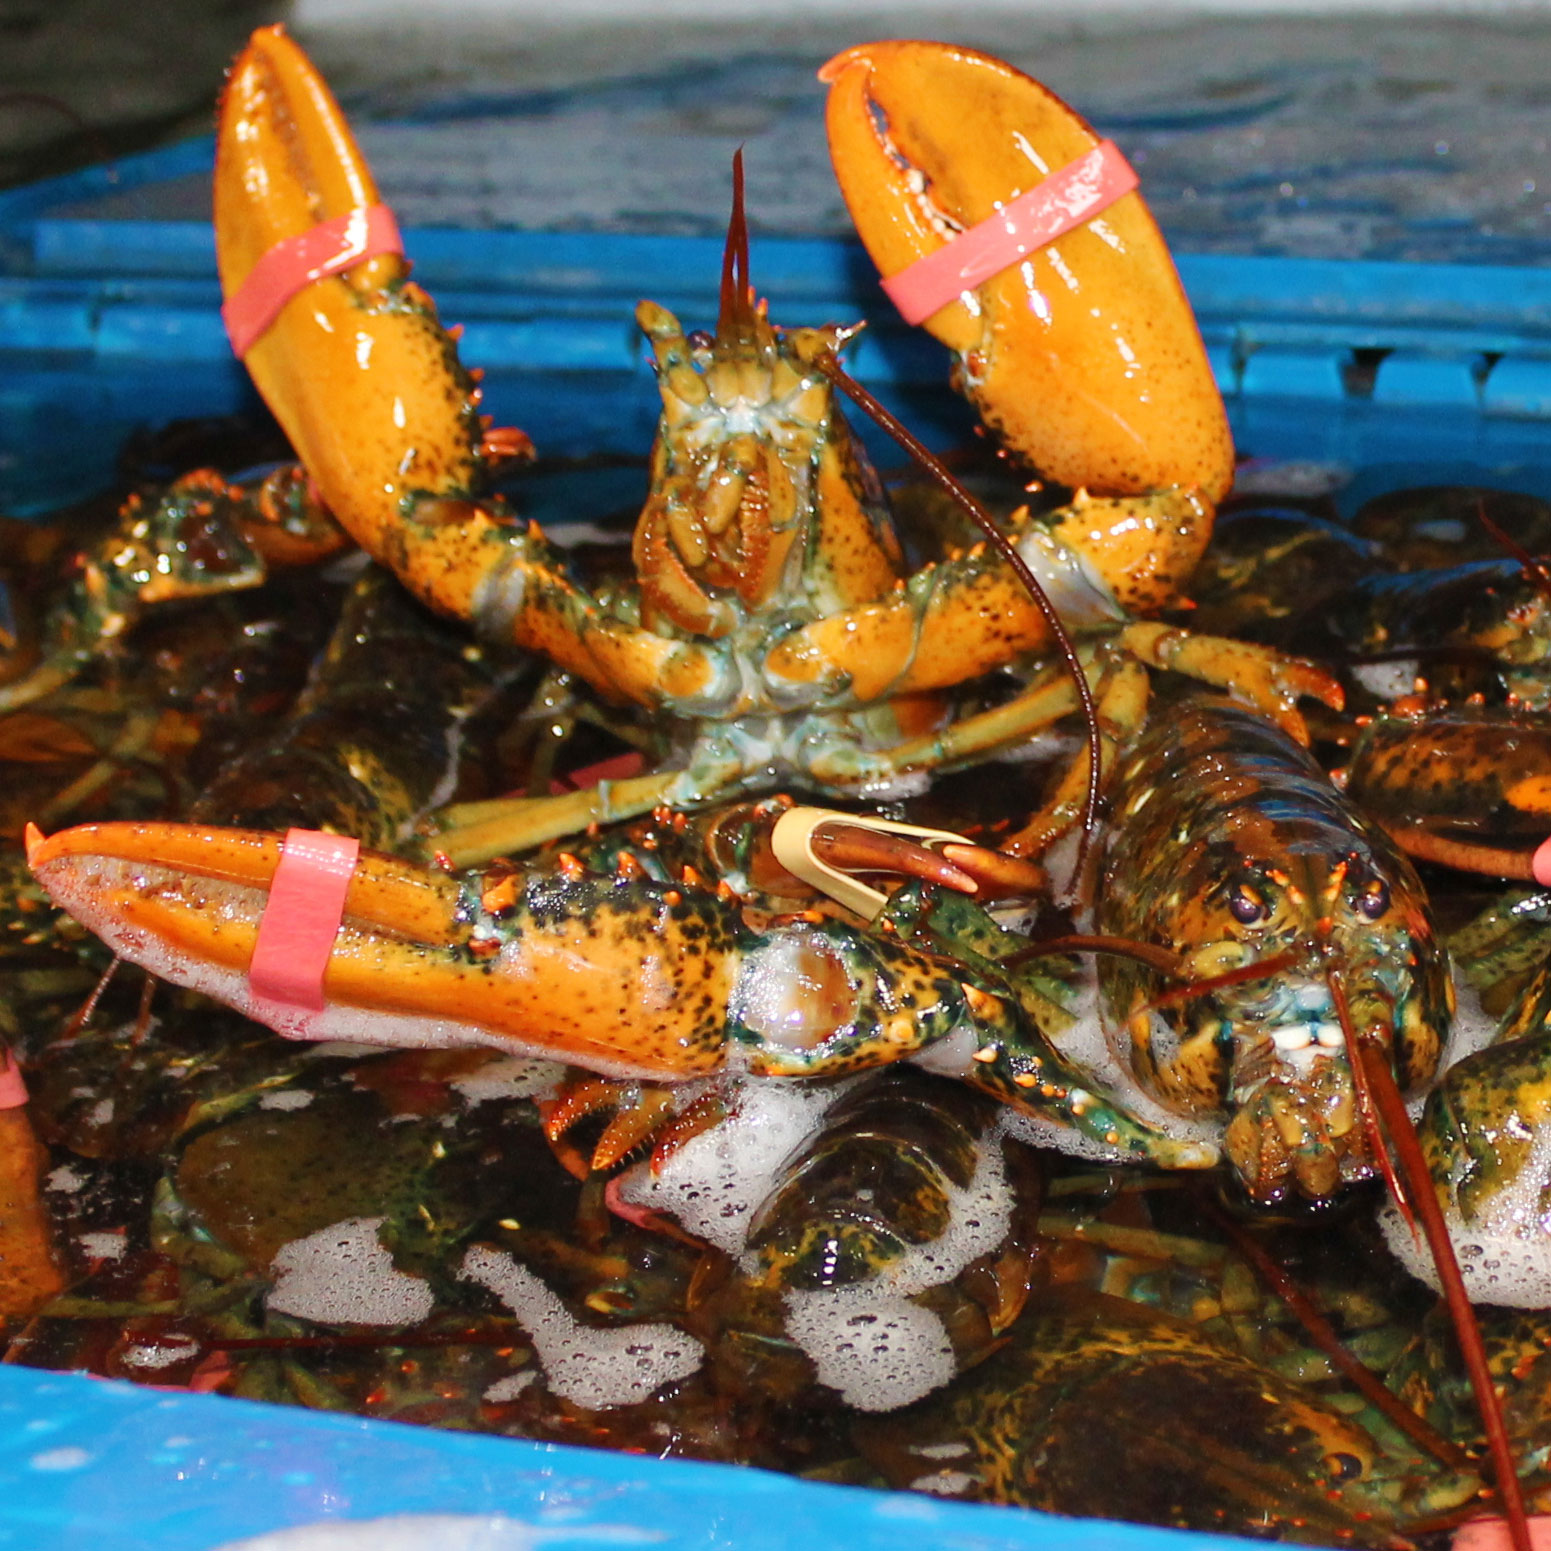 Live Lobsters & Lobster Meat